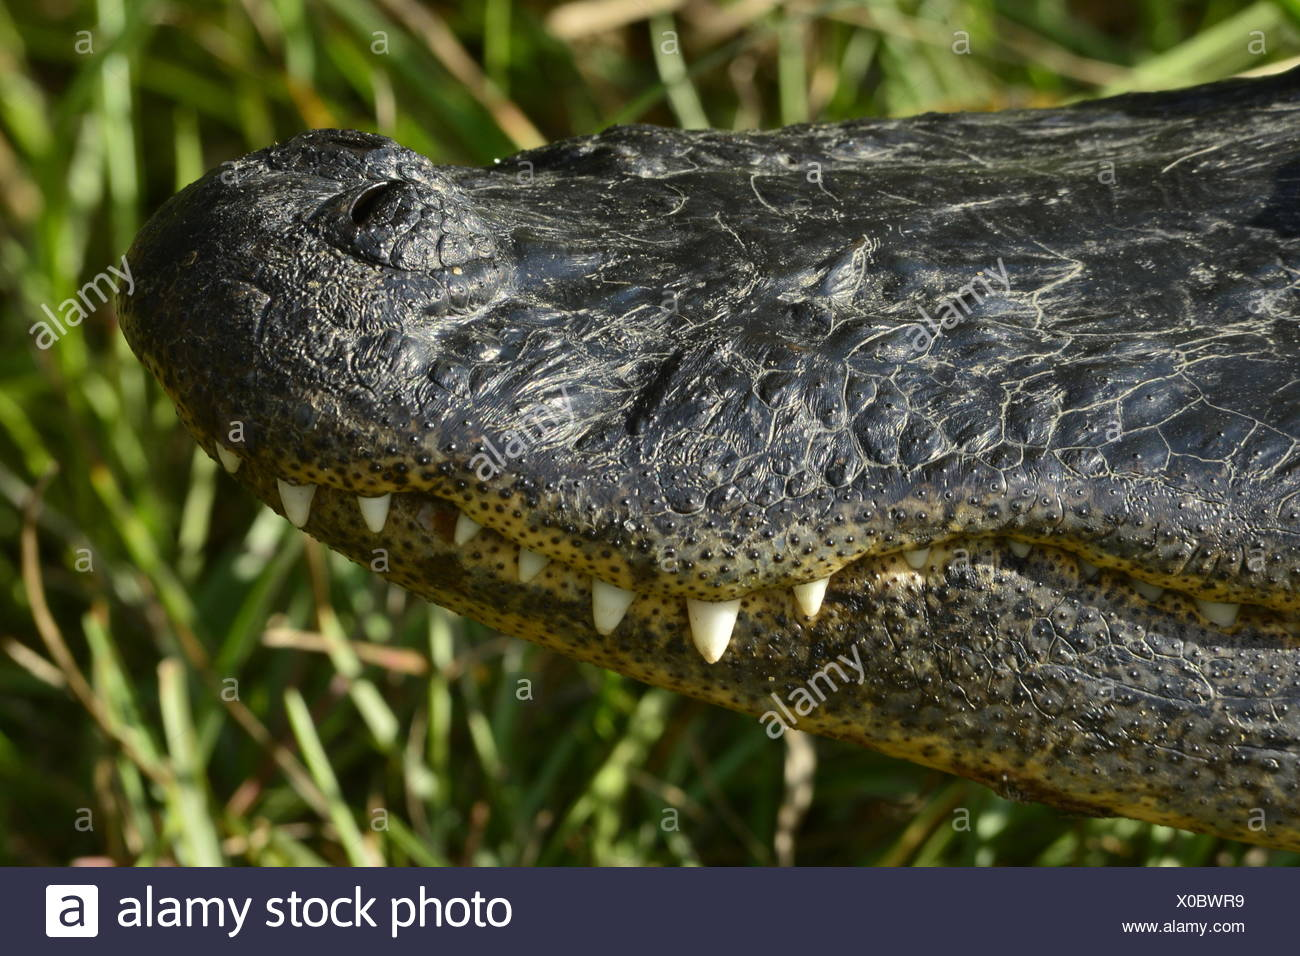 The snout and teeth of an American alligator. - Stock Image